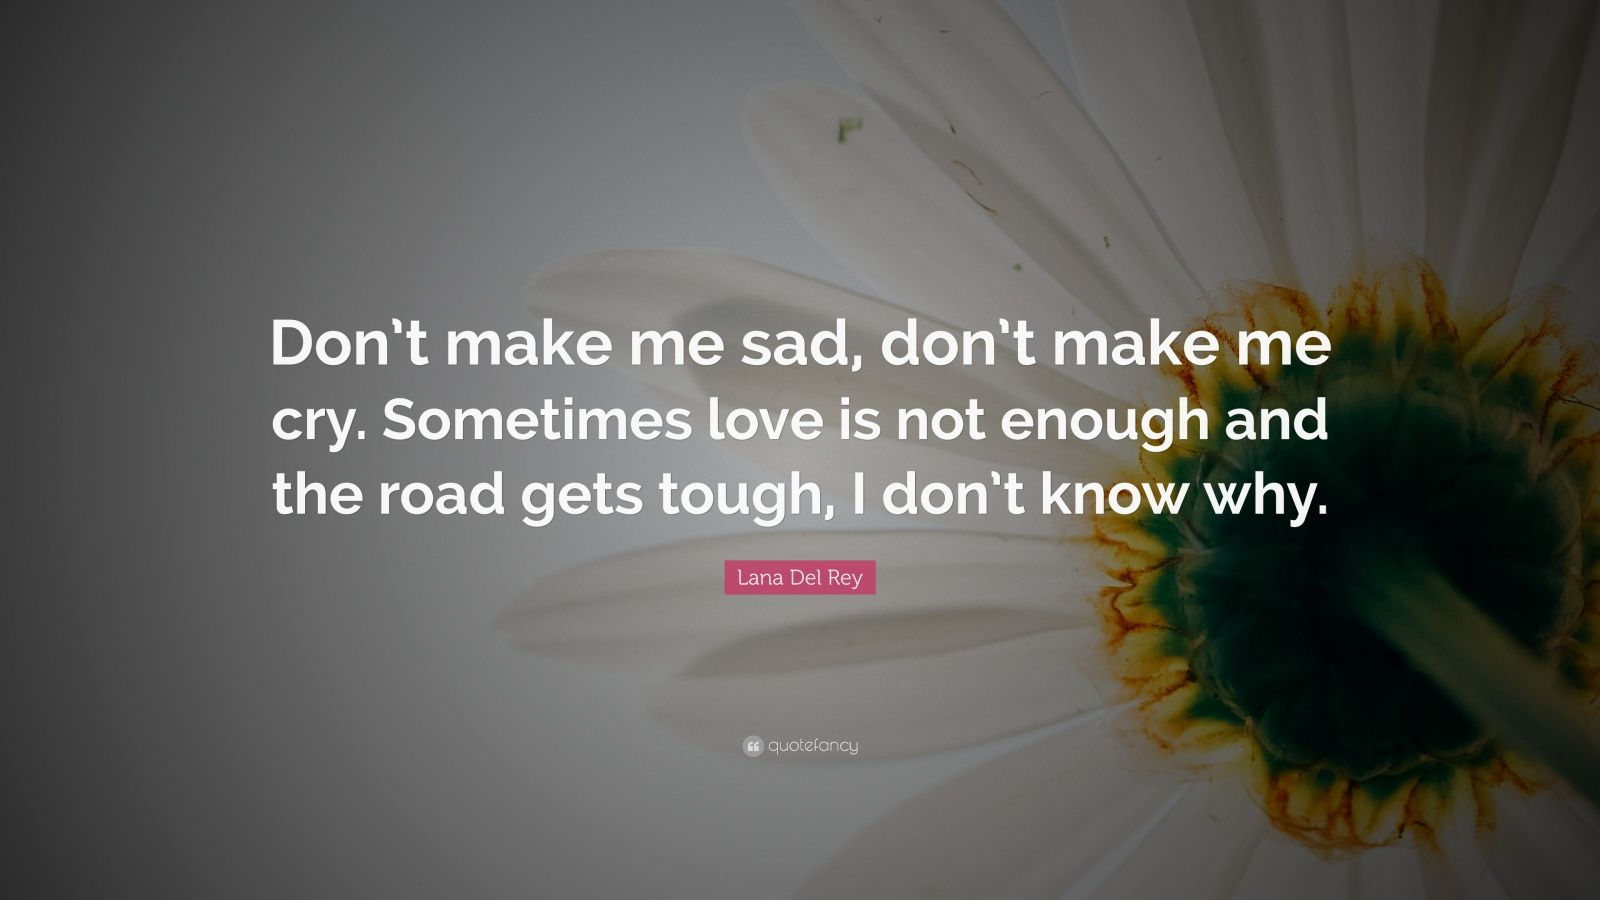 """Lana Del Rey Quote: """"Don't make me sad, don't make me cry. Sometimes love is not enough and the road gets tough, I don't know why."""""""